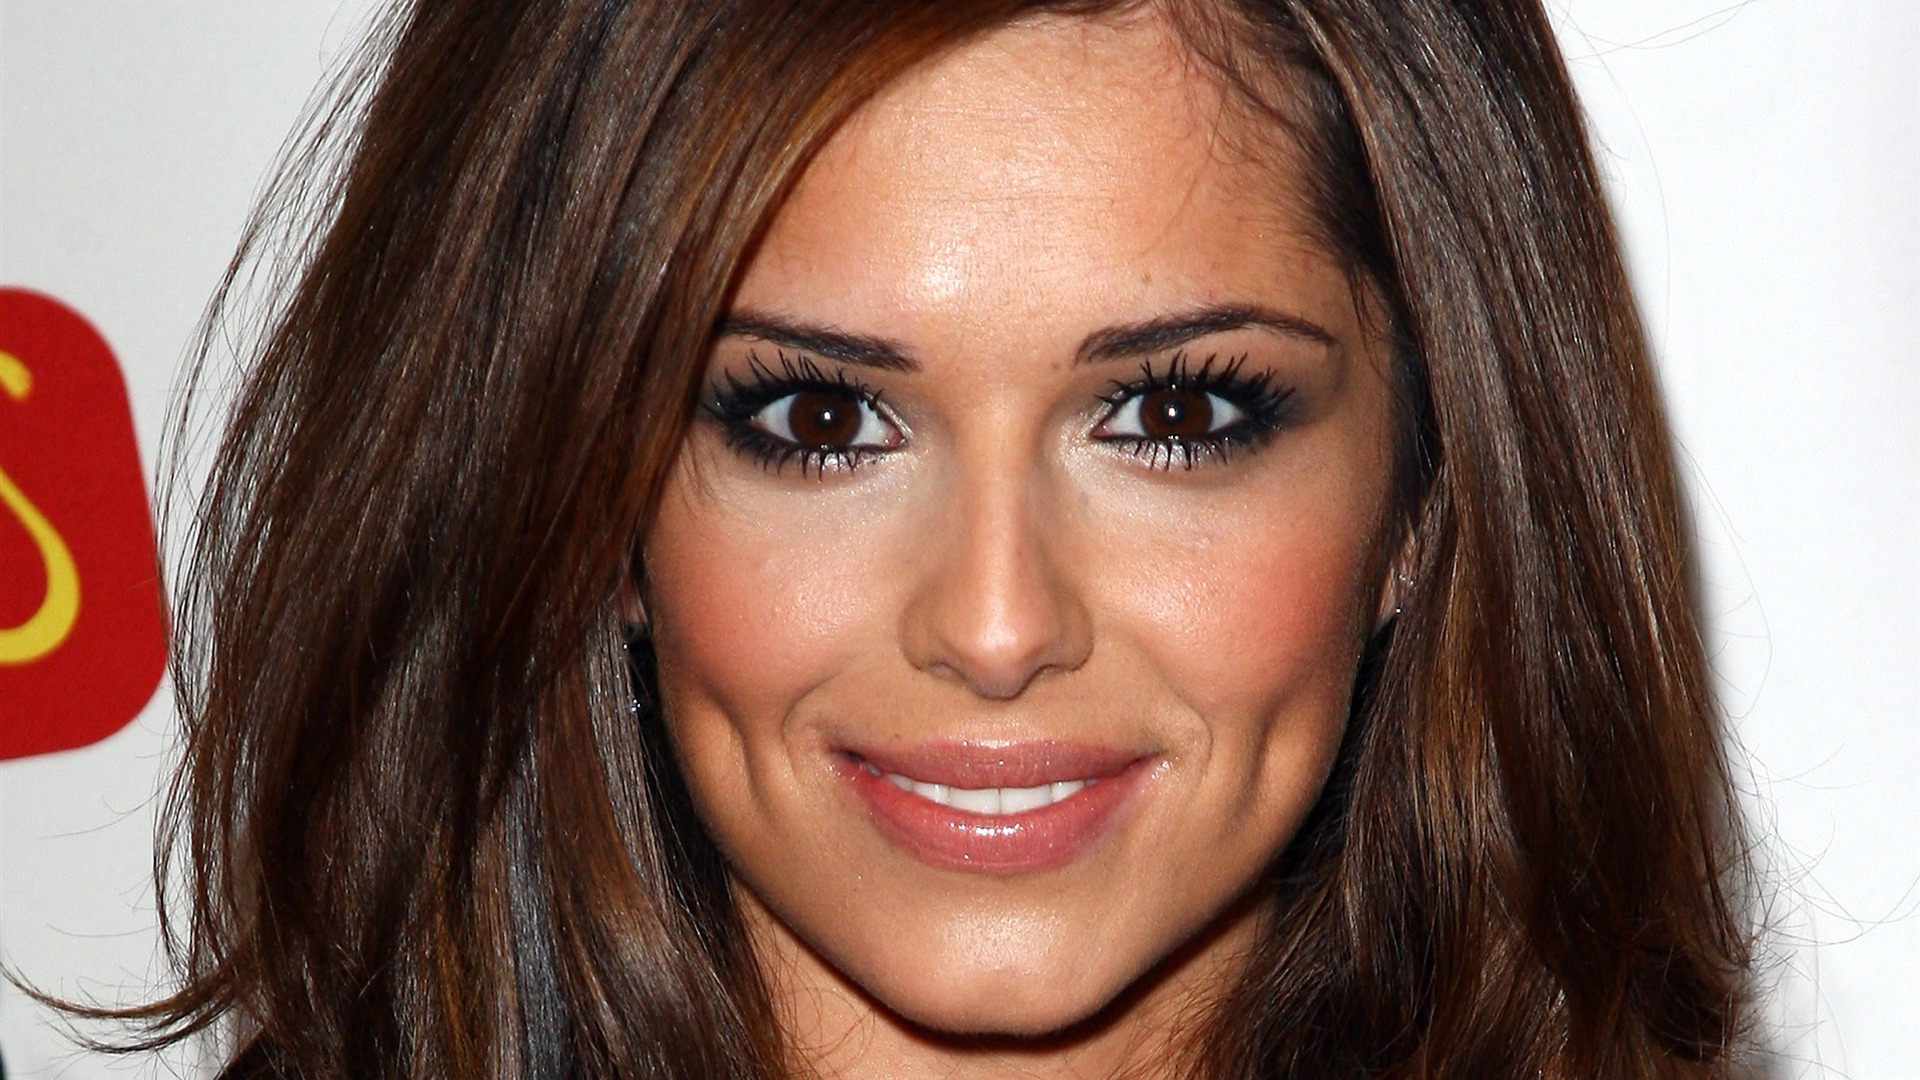 Cheryl Cole wallpapers   Wallpaper Download - Cheryl Cole  029Cheryl Cole